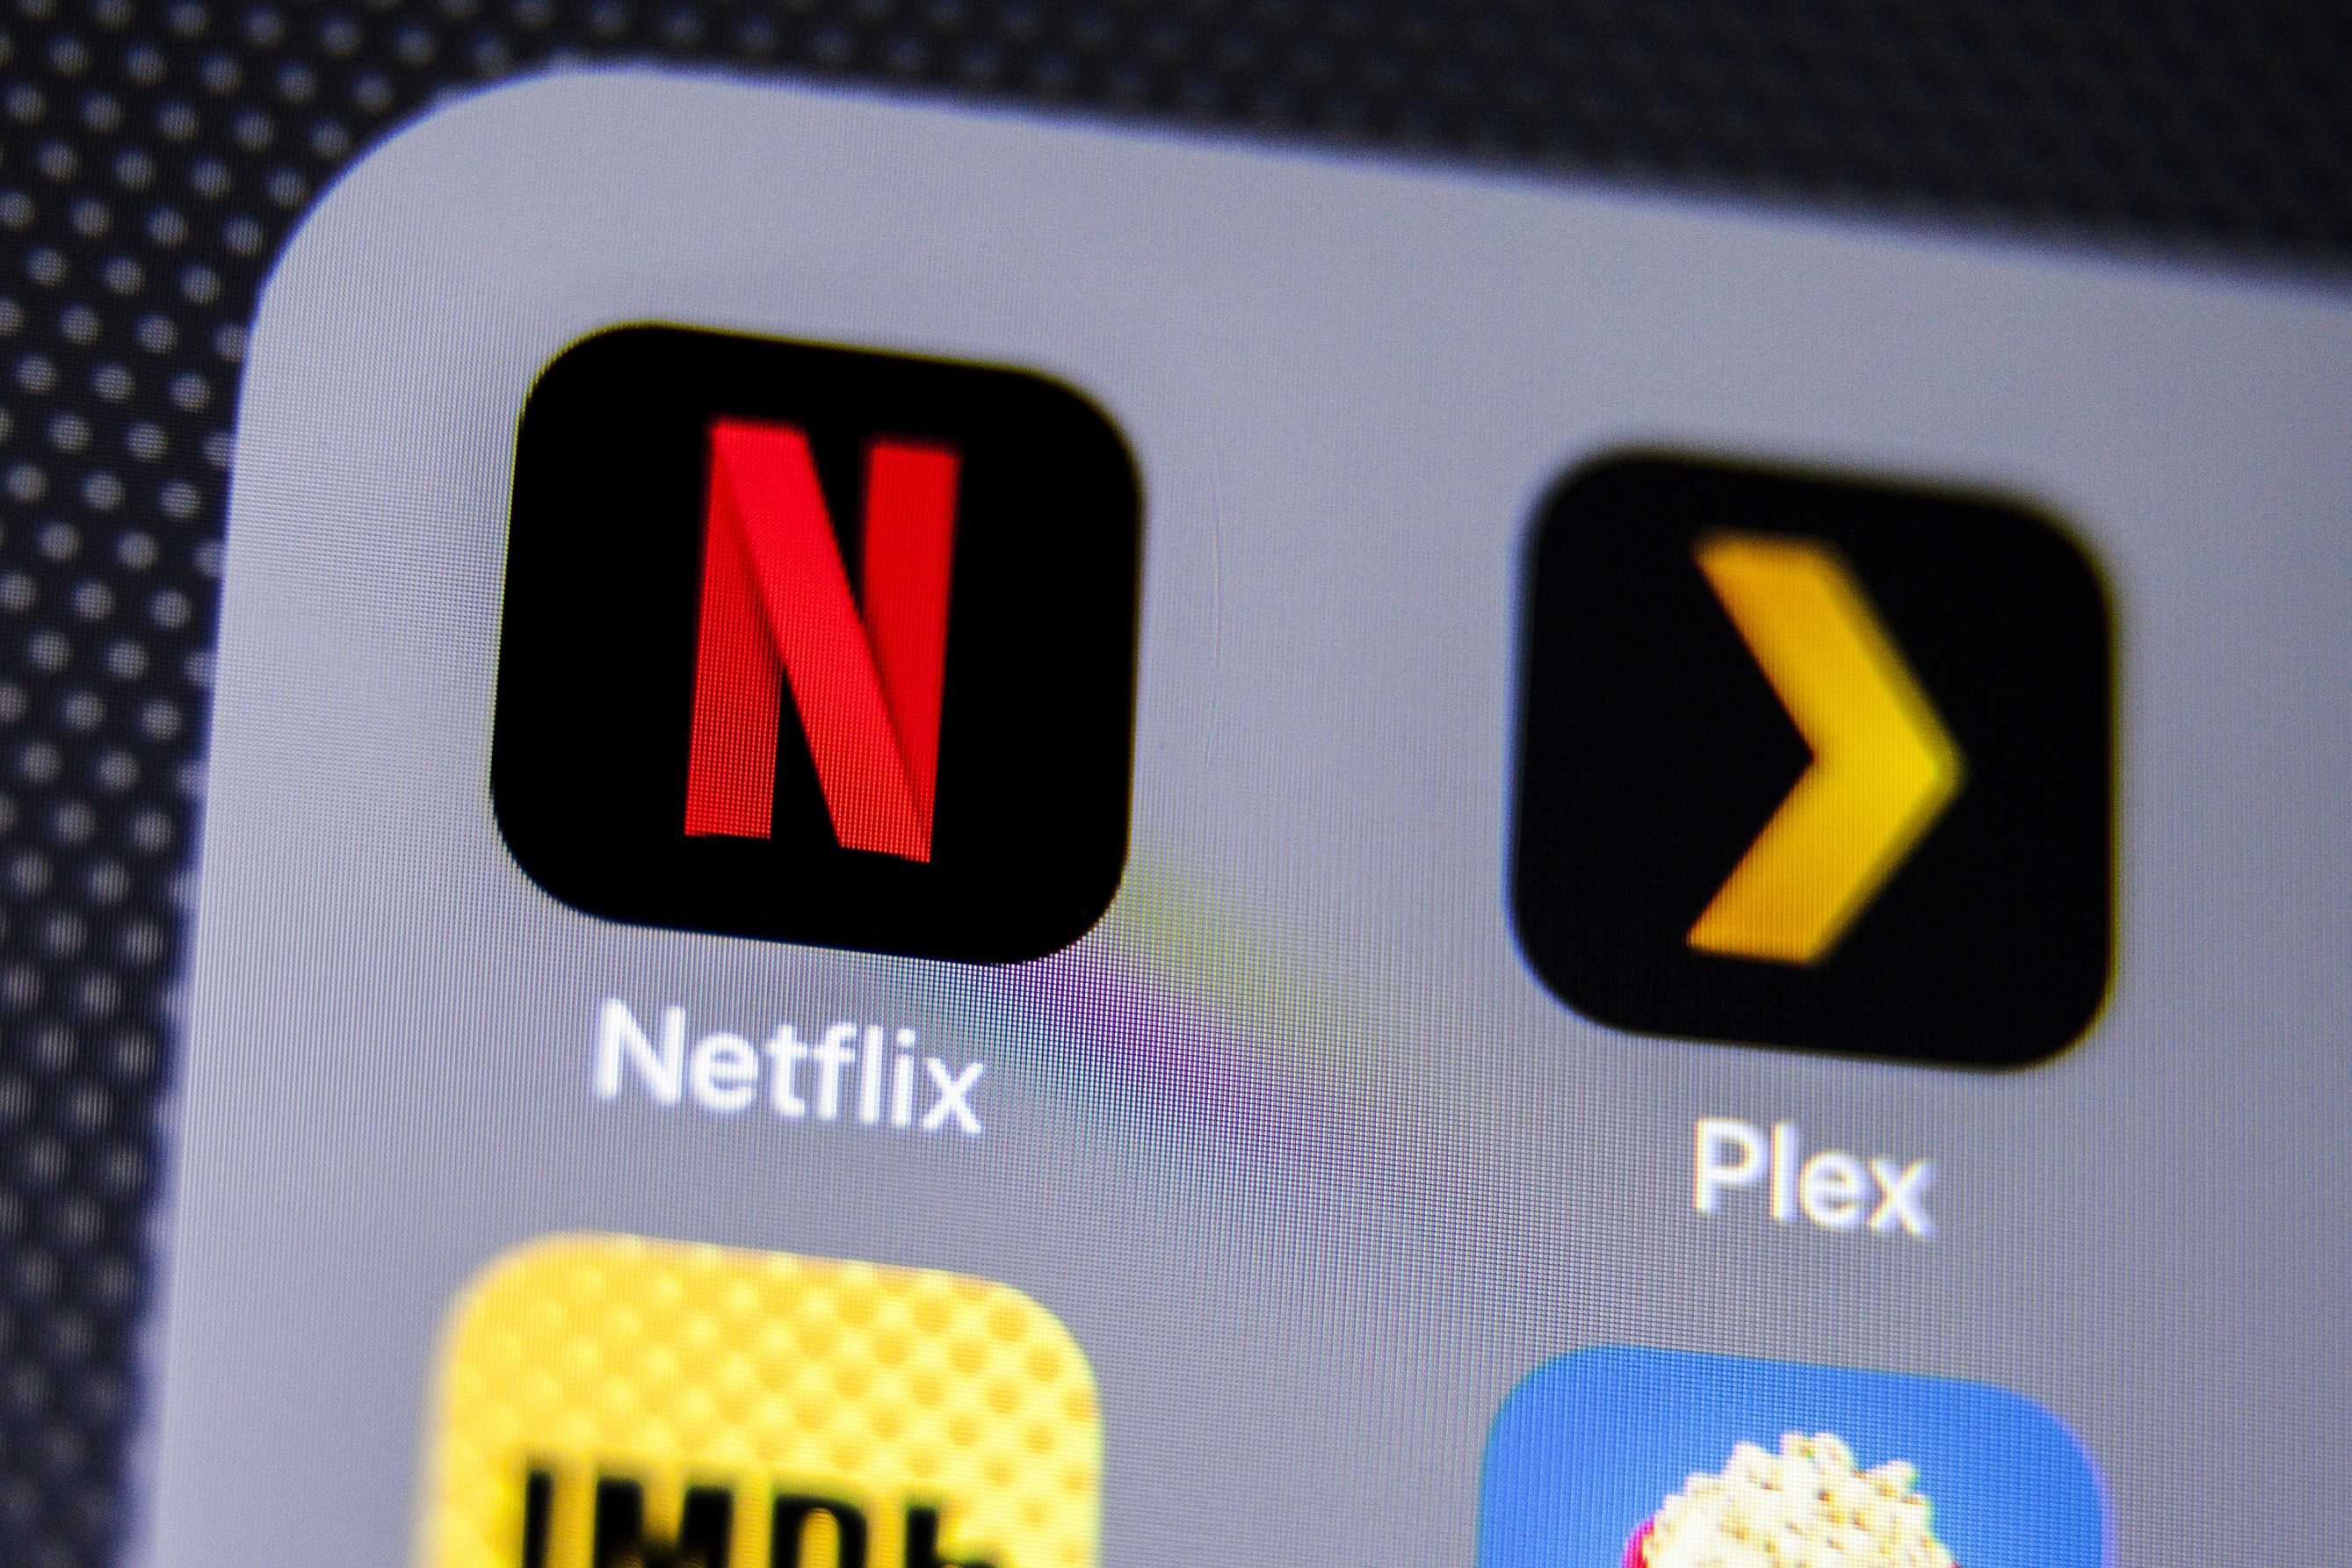 Email phishing scam targeting Netflix users